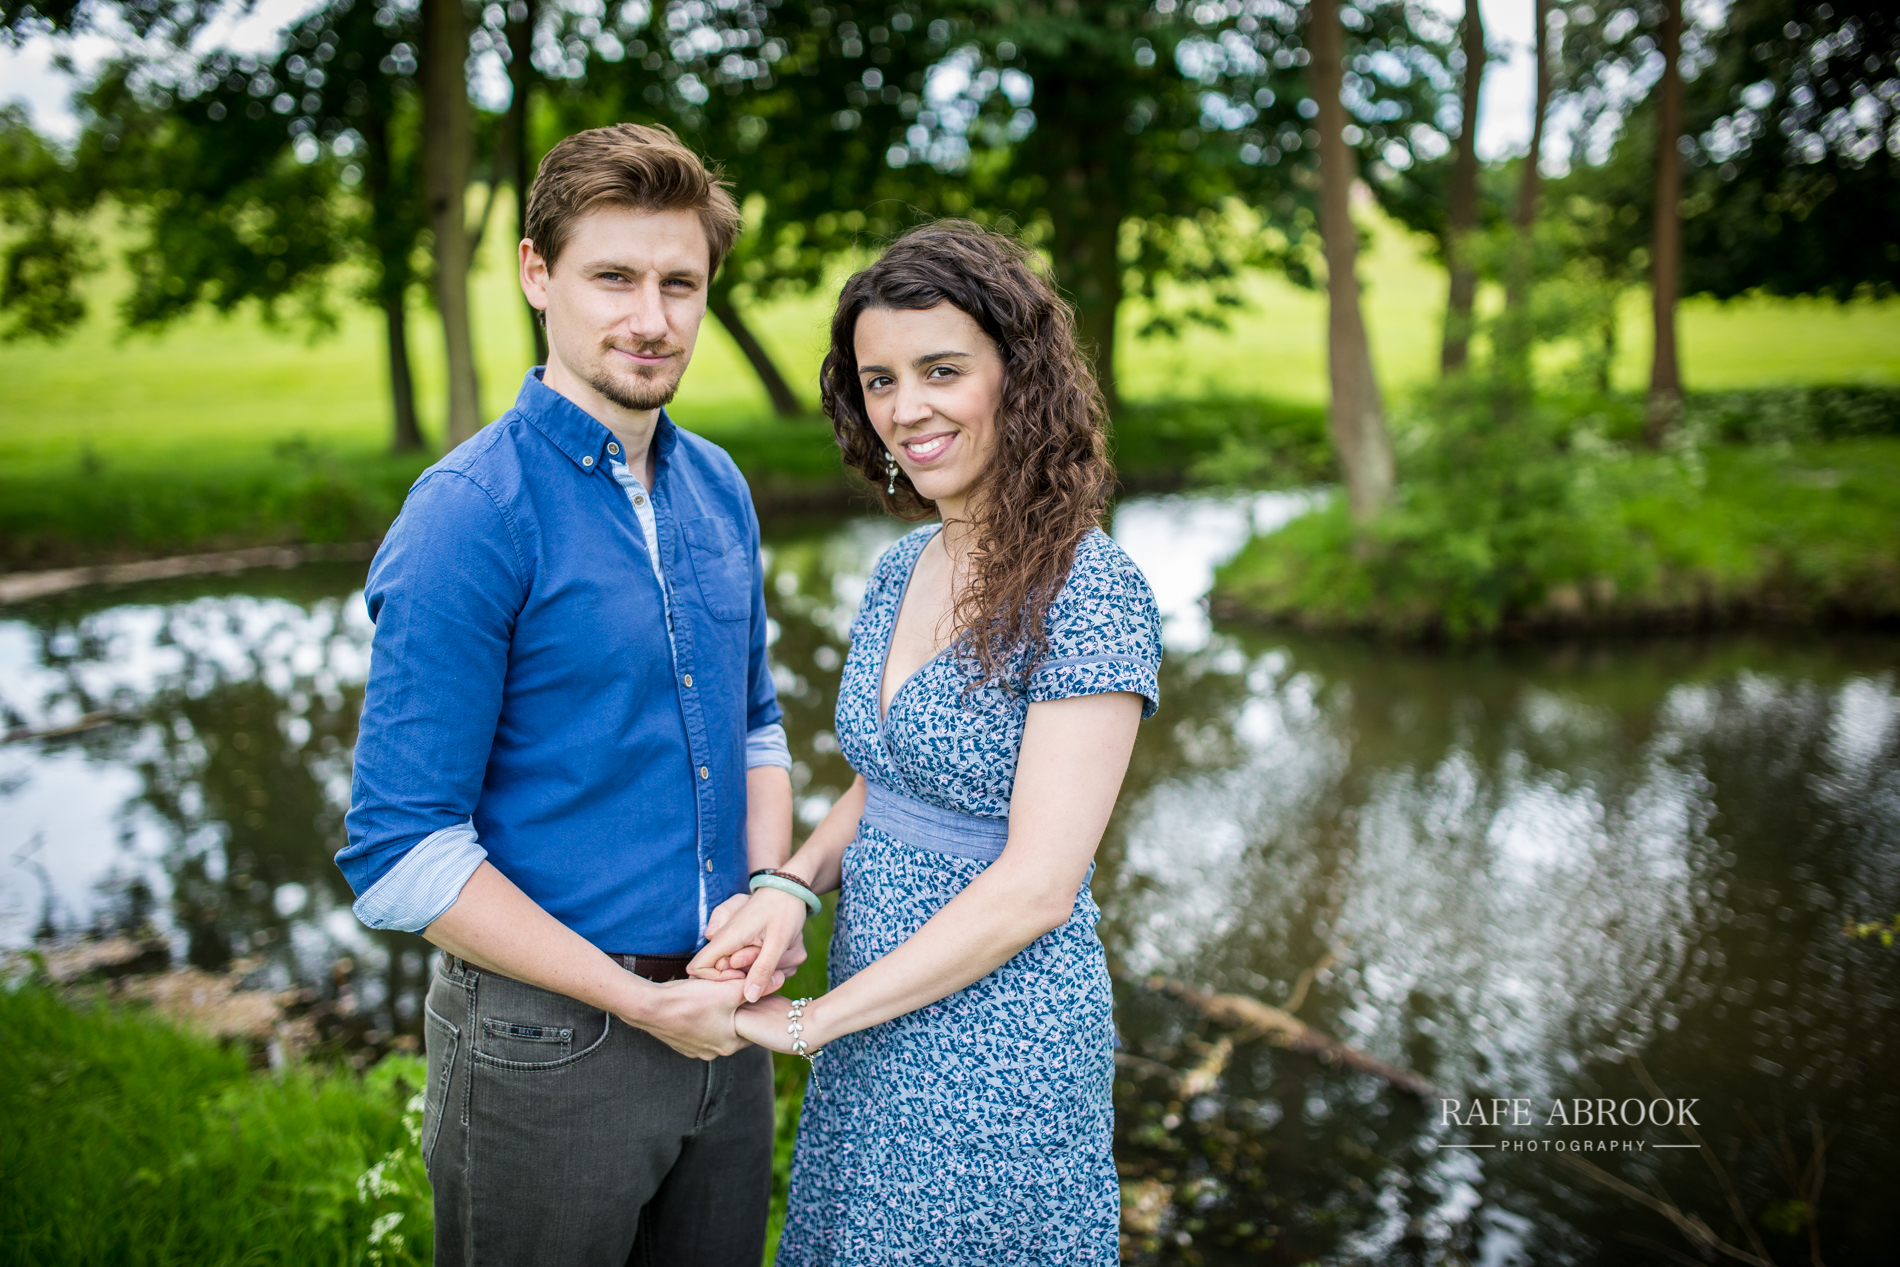 jade & sean engagement shoot knebworth park house hertfordshire-1038.jpg